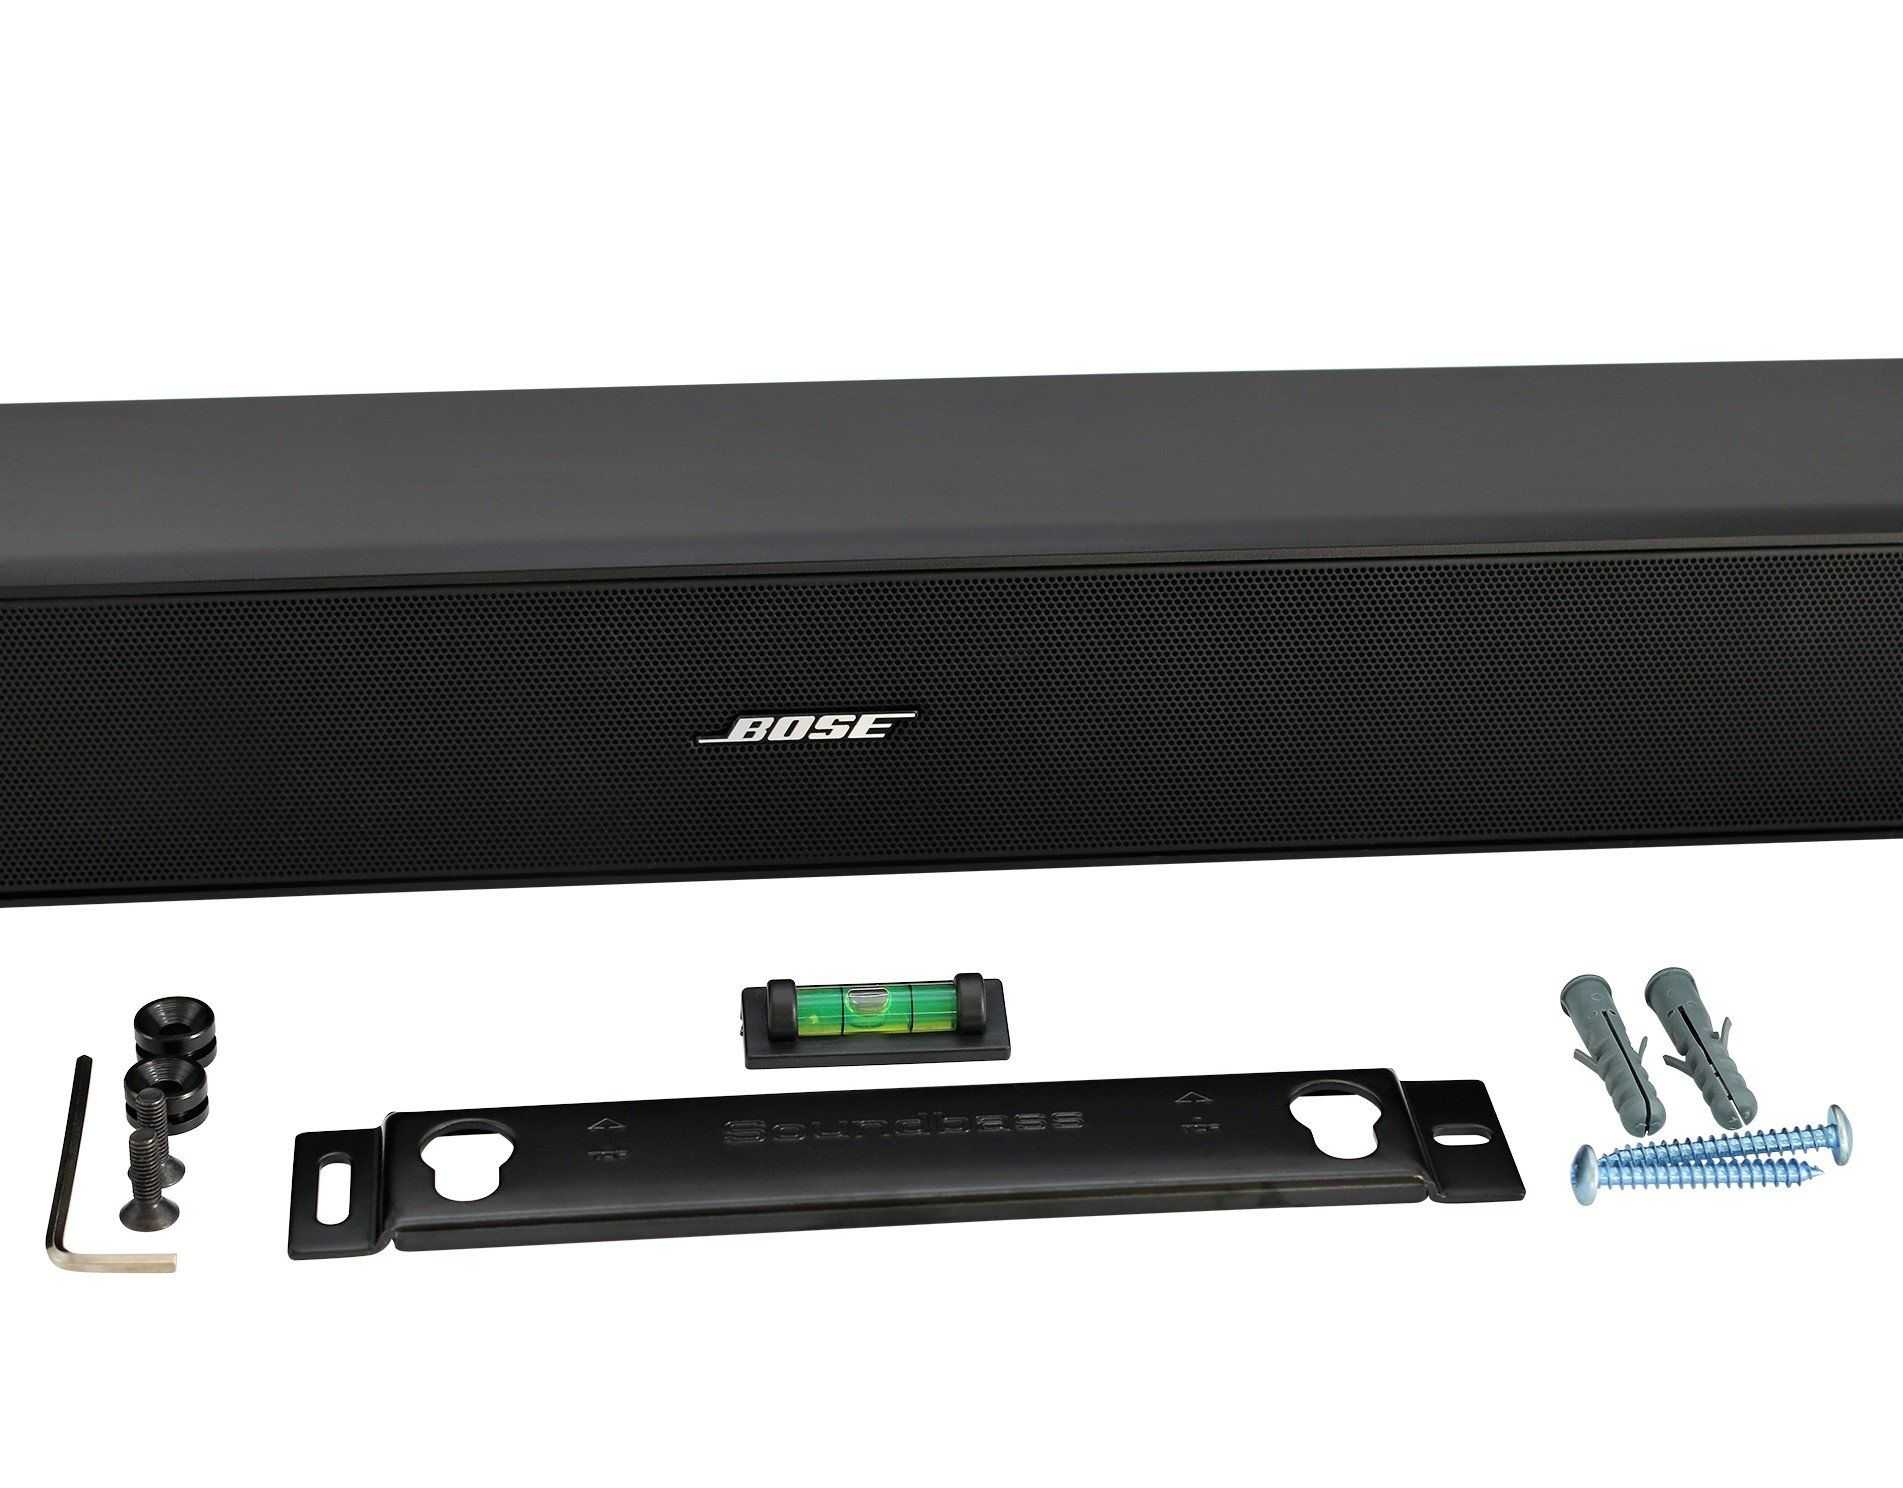 Solo 5 Wall Mount Kit For Bose Solo 5 Complete With All Mounting Hardware Designed In The Uk By Soundbass Kit Bos Sound Bar Sound Bar Wall Mount Wall Mount